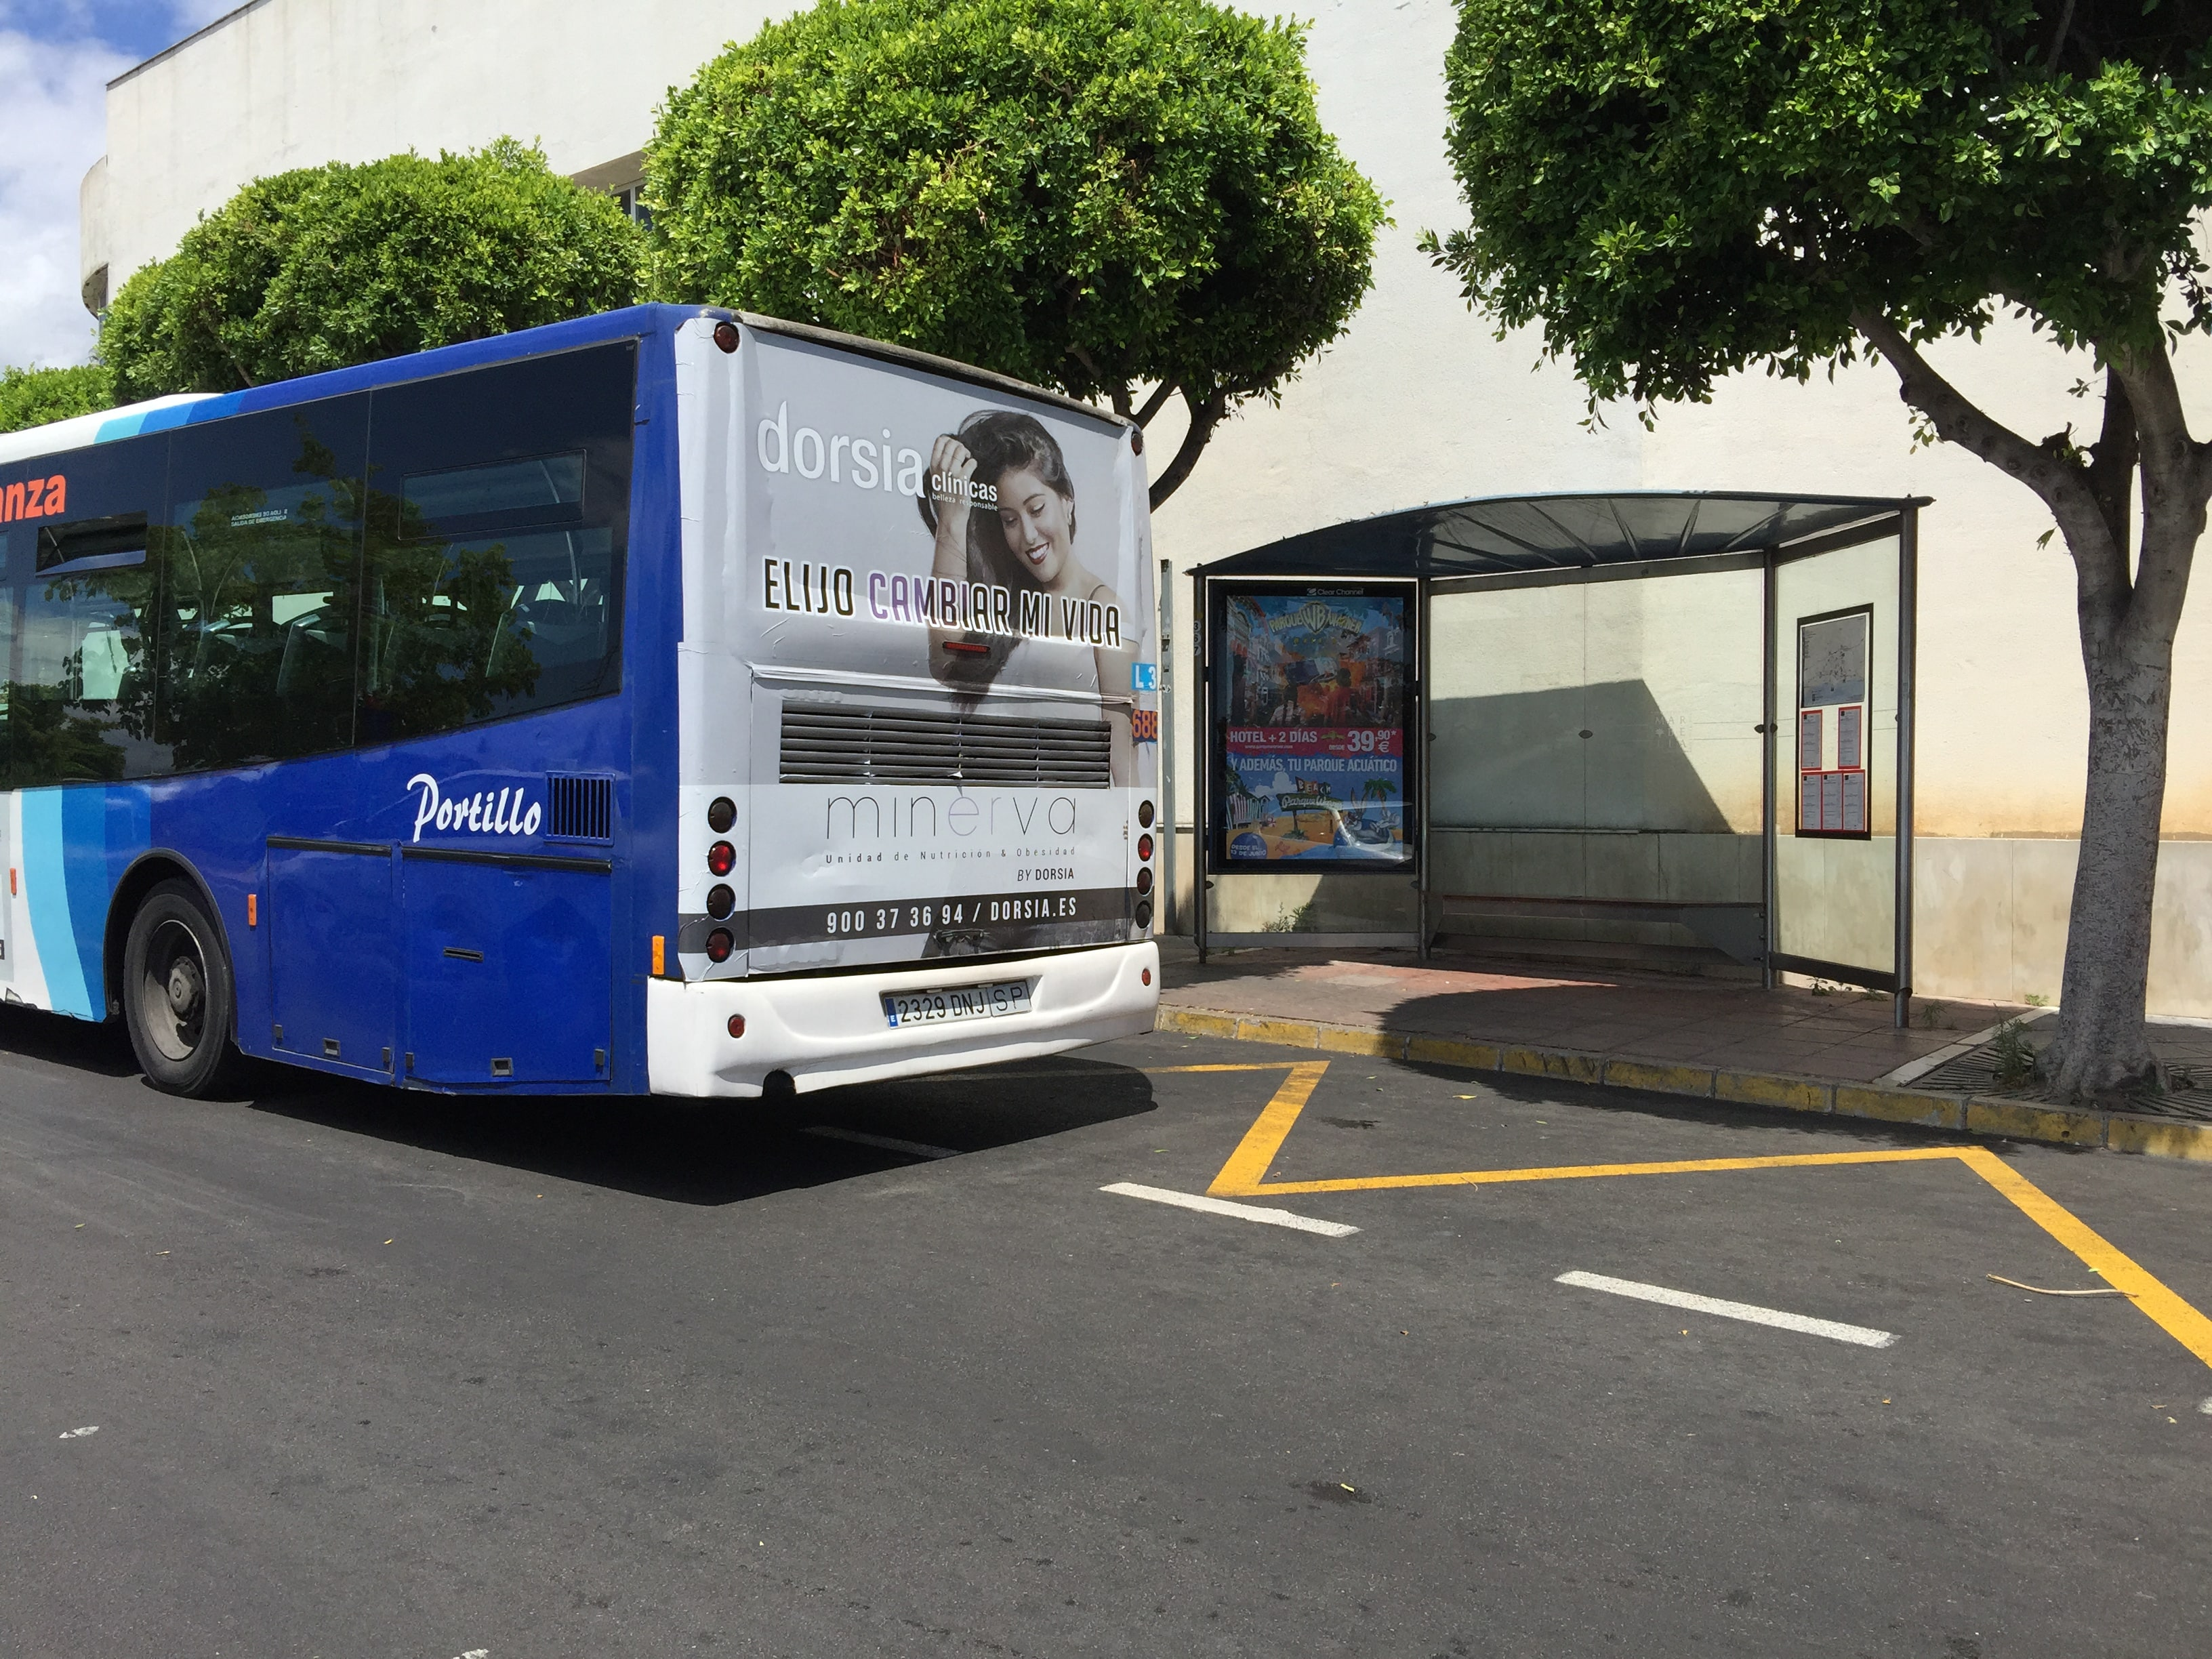 Outdoor advertising campaign for Clínicas Dorsia